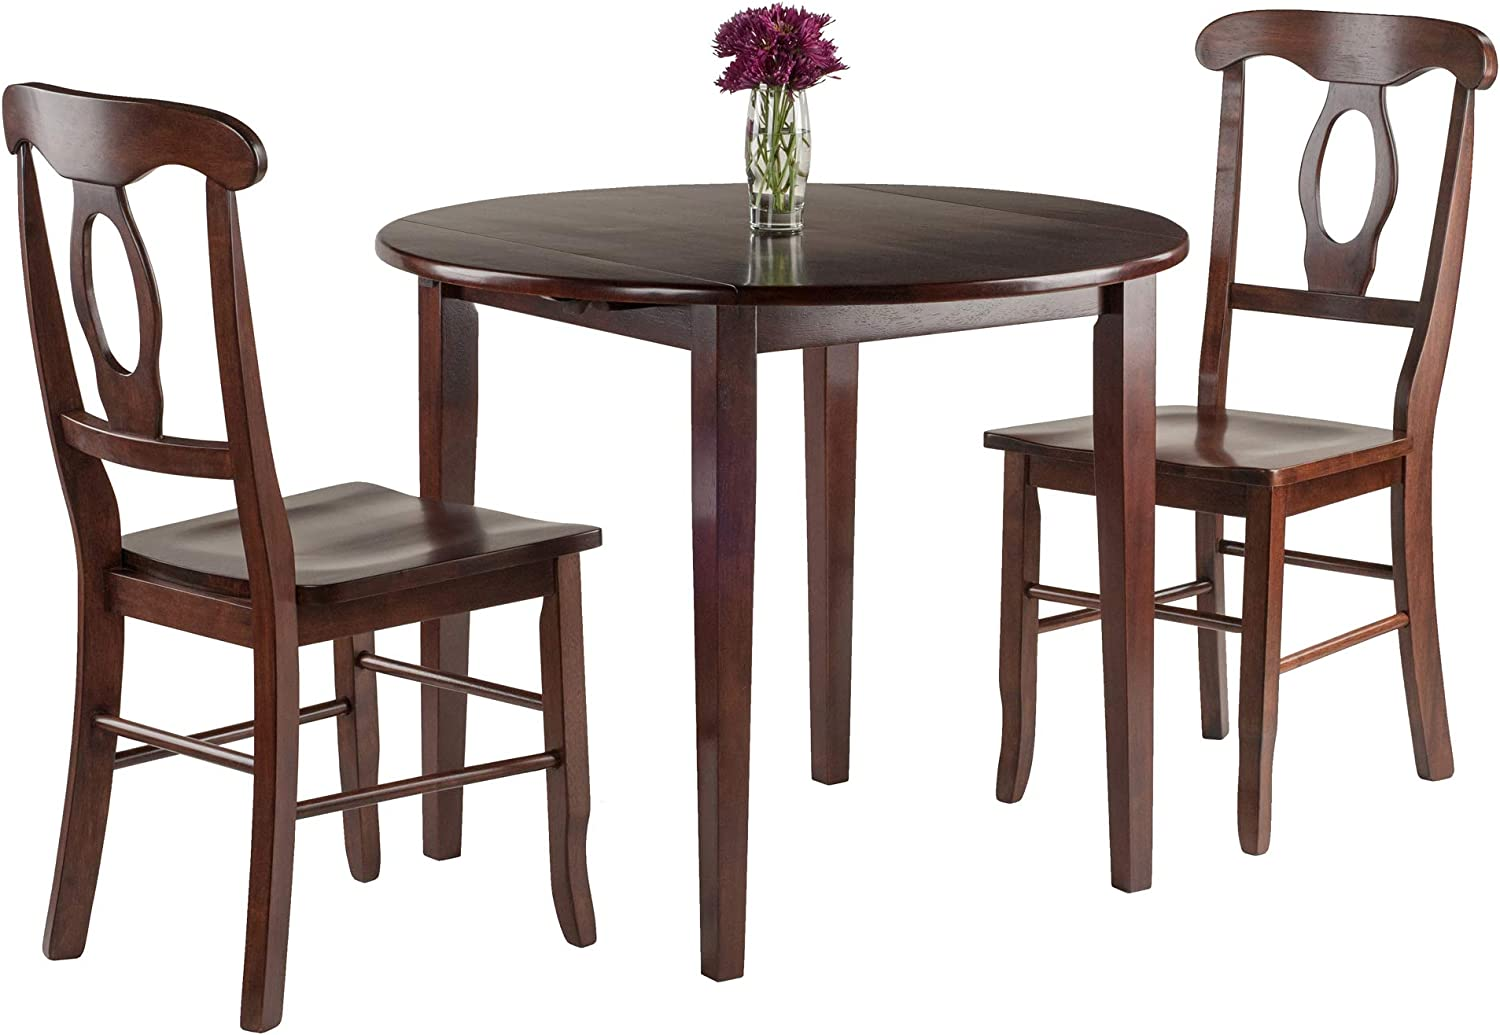 Amazon Com Winsome Clayton 3 Pc Set Drop Leaf Table With 2 Keyhole Back Chairs Dining Walnut Table Chair Sets